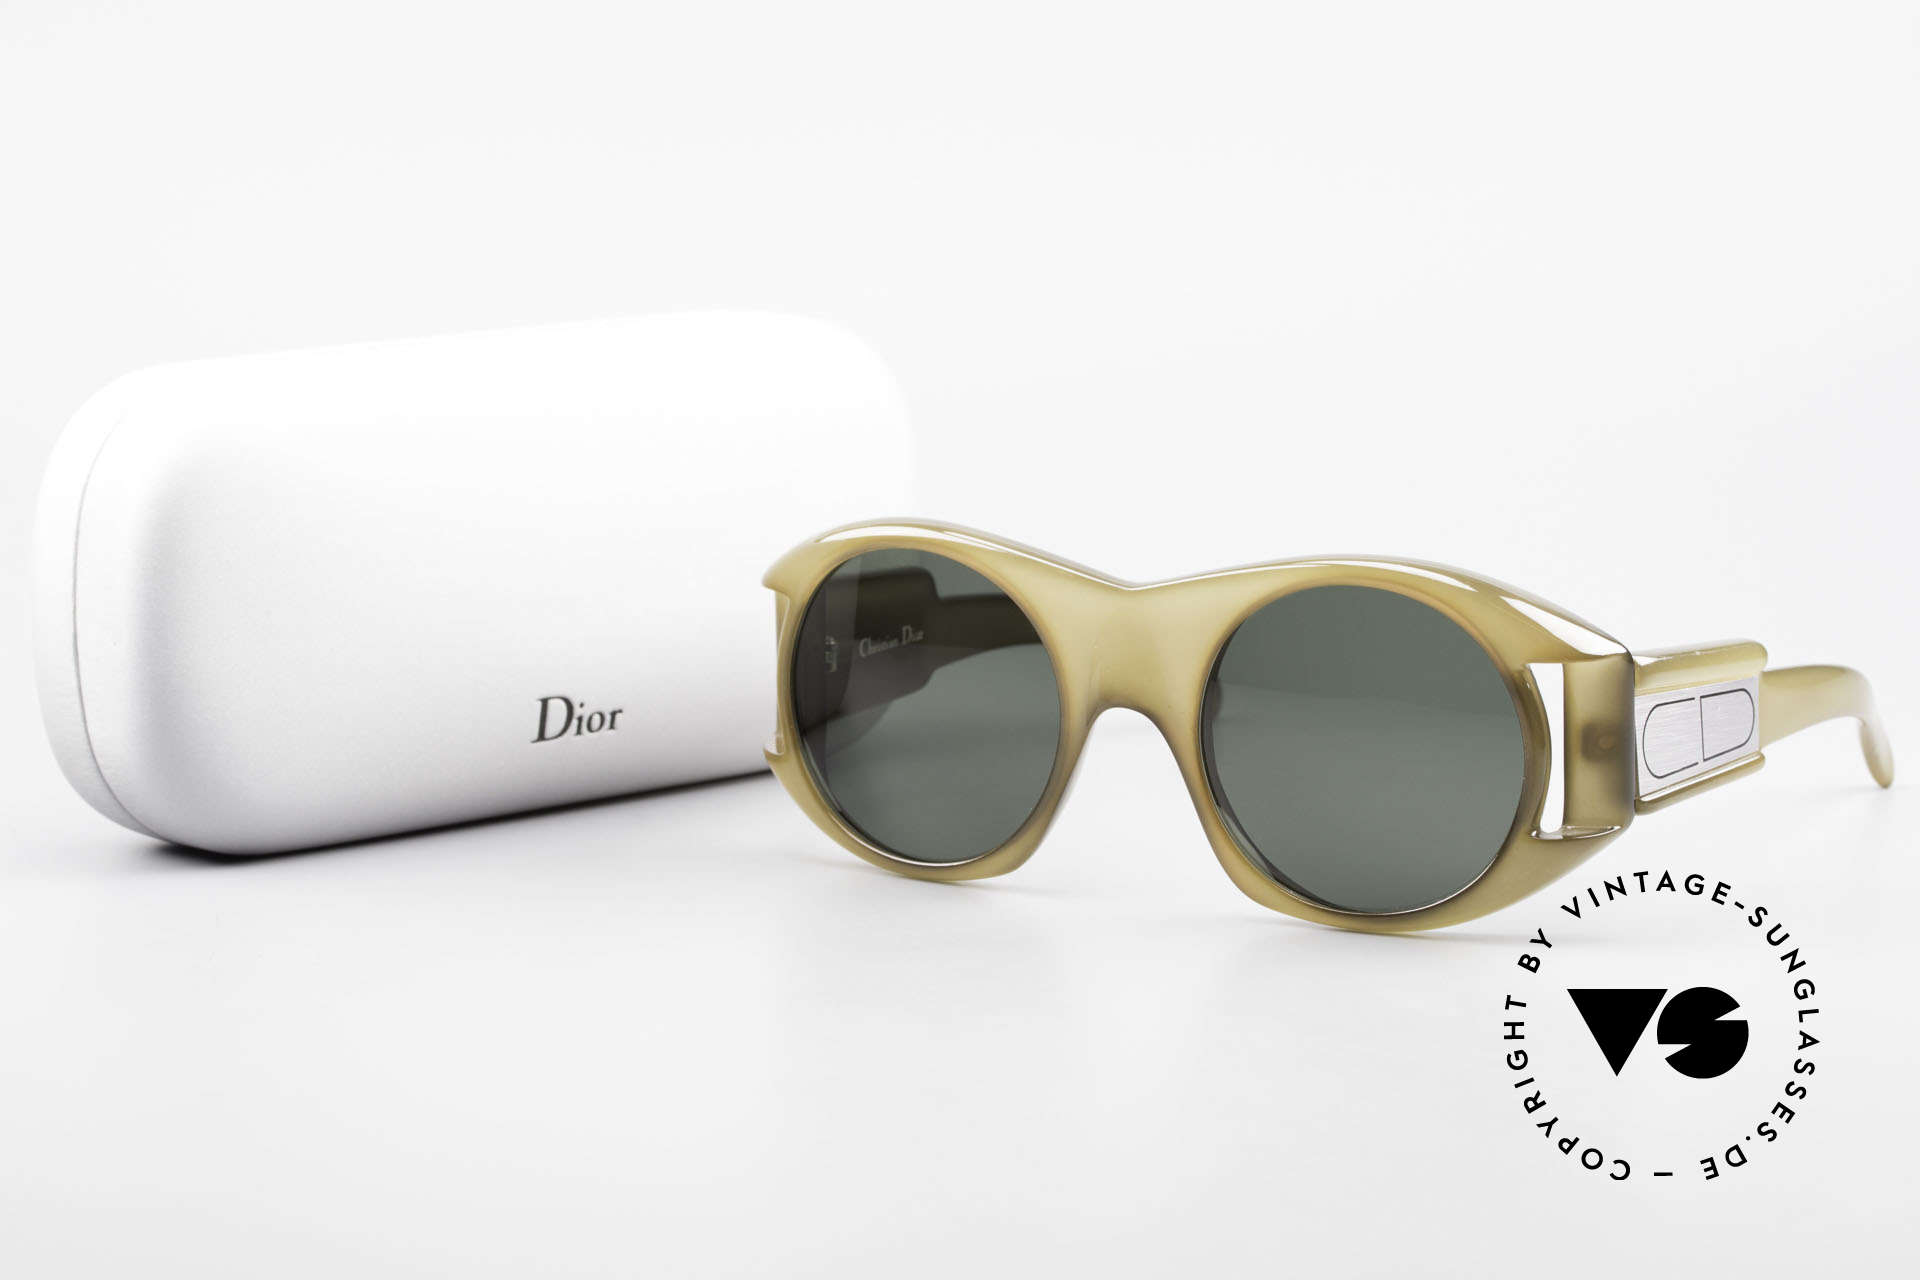 Christian Dior C61 Rare Old 70's Optyl Sunglasses, Size: medium, Made for Men and Women